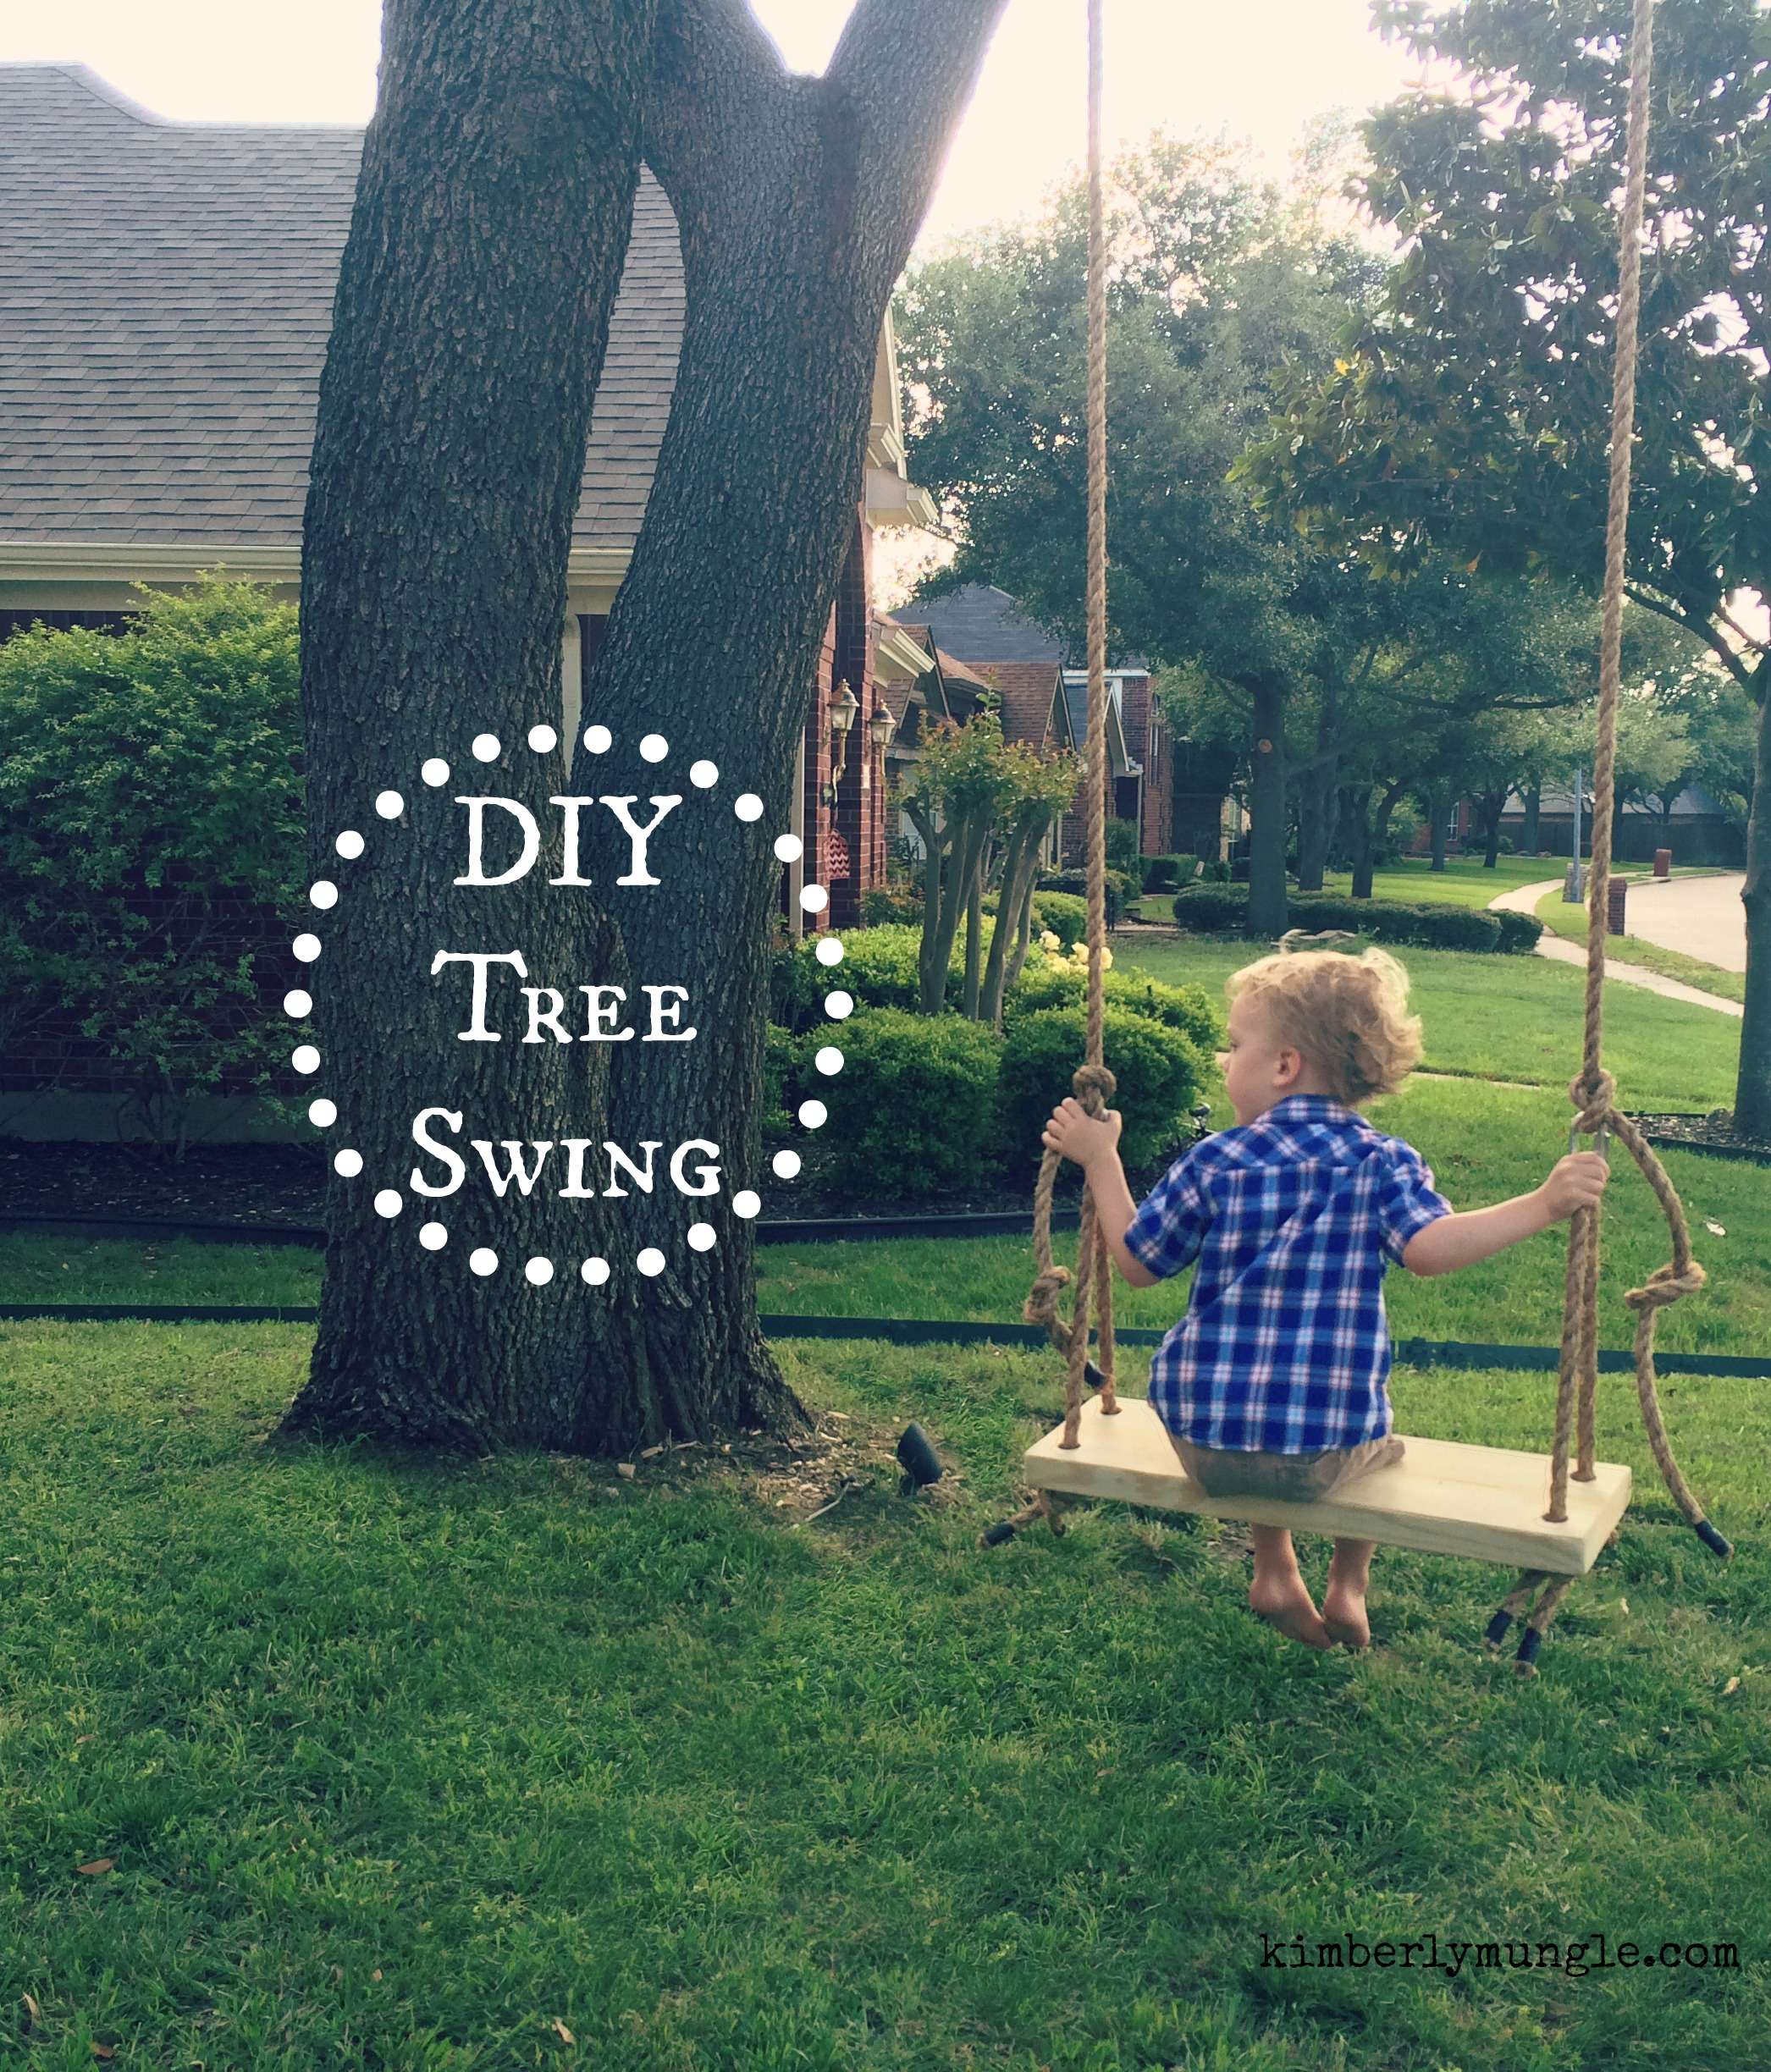 How to build a tree swing - Friends I Have Always Wanted A Tree Swing Like Seriously I Had A Swing Set When I Was A Kid Not An Old Fashioned Tree Swing I M Not Sure Why